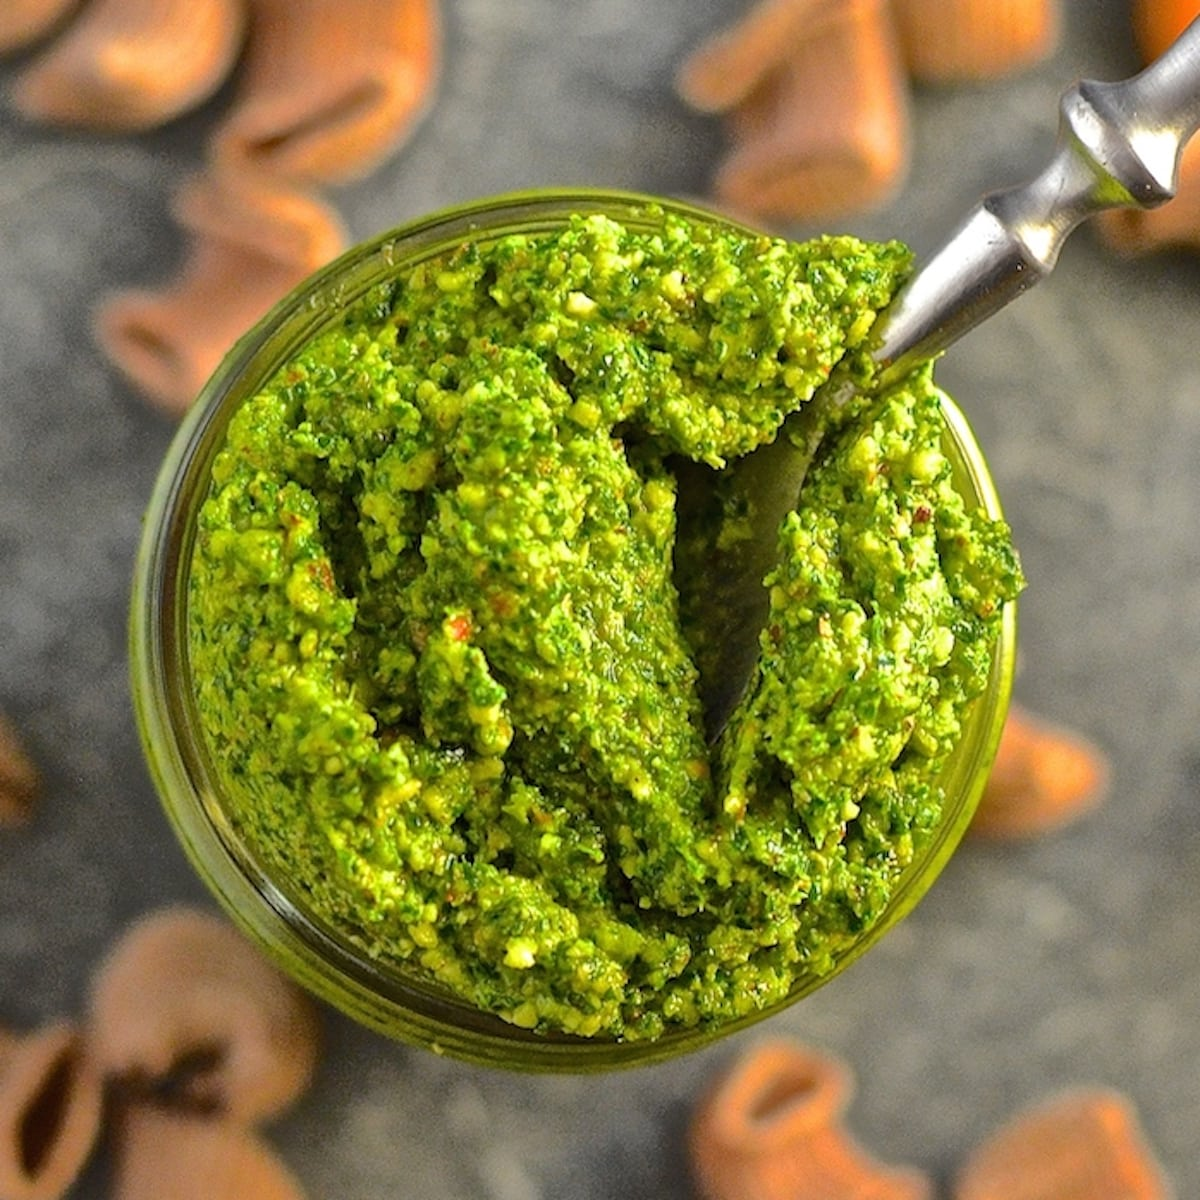 a jar of kale almond pesto with a spoon in it. Photo taken from above.